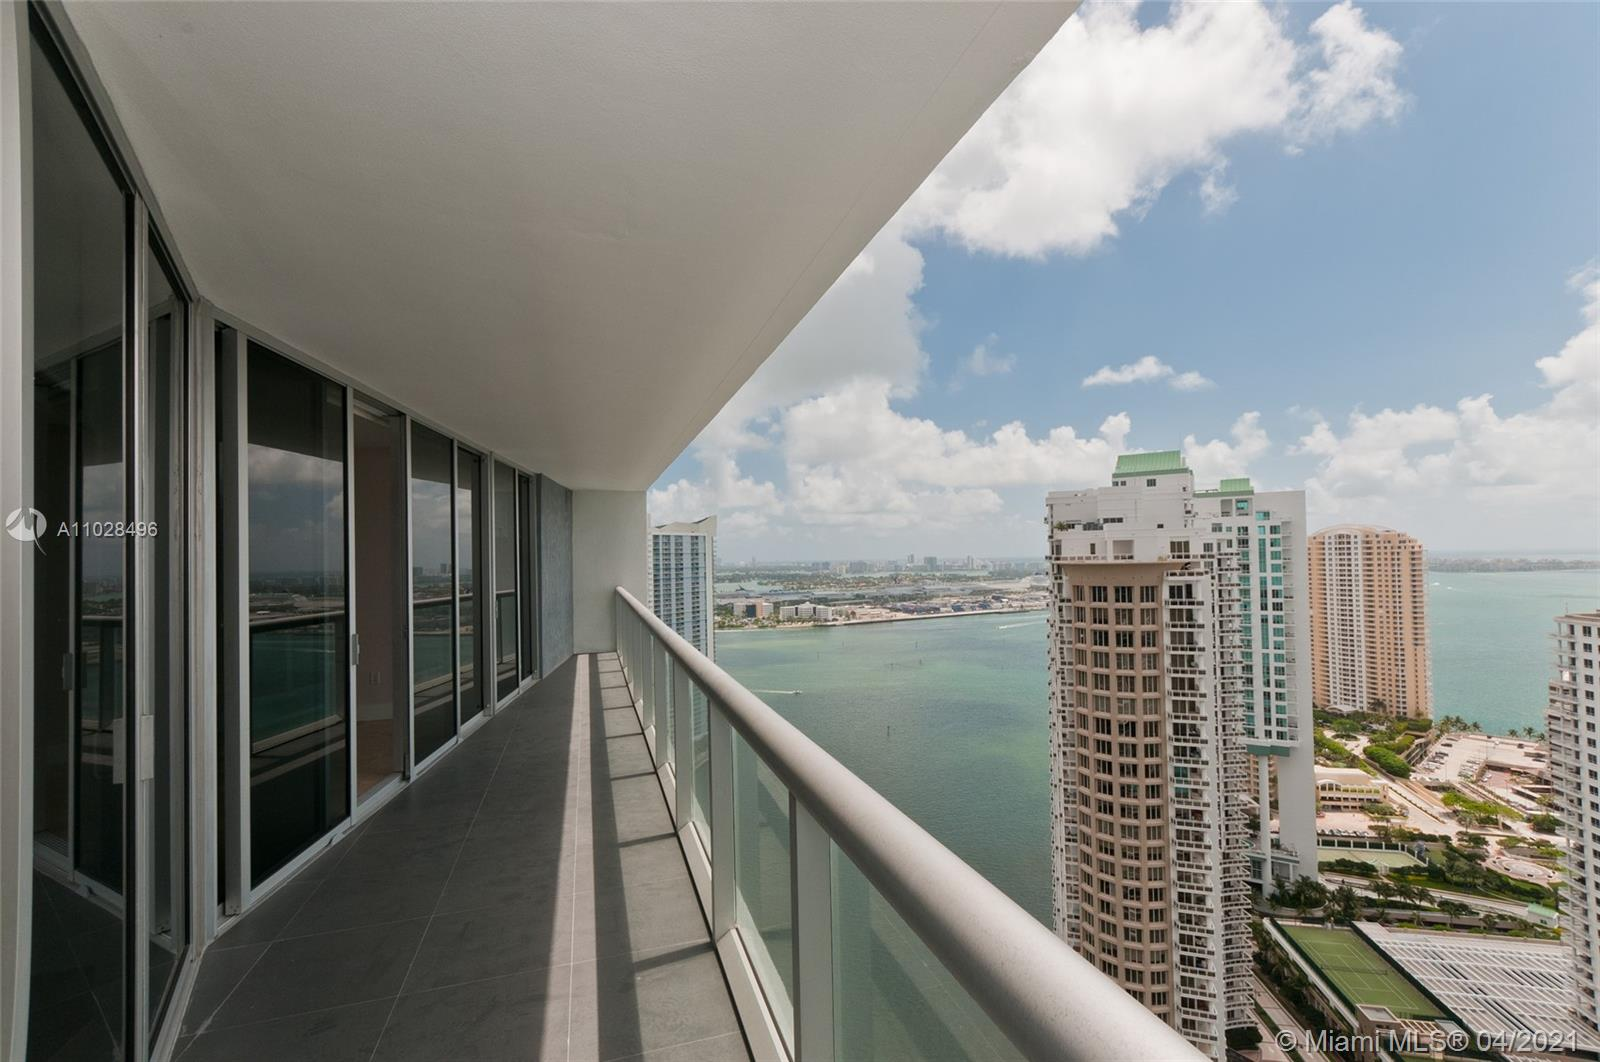 Beautiful and elegant 2 bedrooms plus den that could be use as a guest area, office or middle room. The unit offers wood floors, open kitchen, large balcony and excellent bay views. Icon complex is a STATE of the art Miami landmark. As per Icon Brickell website, the architecture, by the world renowned firm Arquitectonica, is unique and ultra-contemporary, perfectly paired with the interior design by Philipe Starck. Olympic-length pool overlooking Biscayne Bay, outdoor fireplace, its exceptional spa, and its lushly landscaped outdoor living room, are some of the distinct amenities that make this building a true icon. Recently, Viceroy hotel has been acquired by W Hotels adding more prestige to the complex